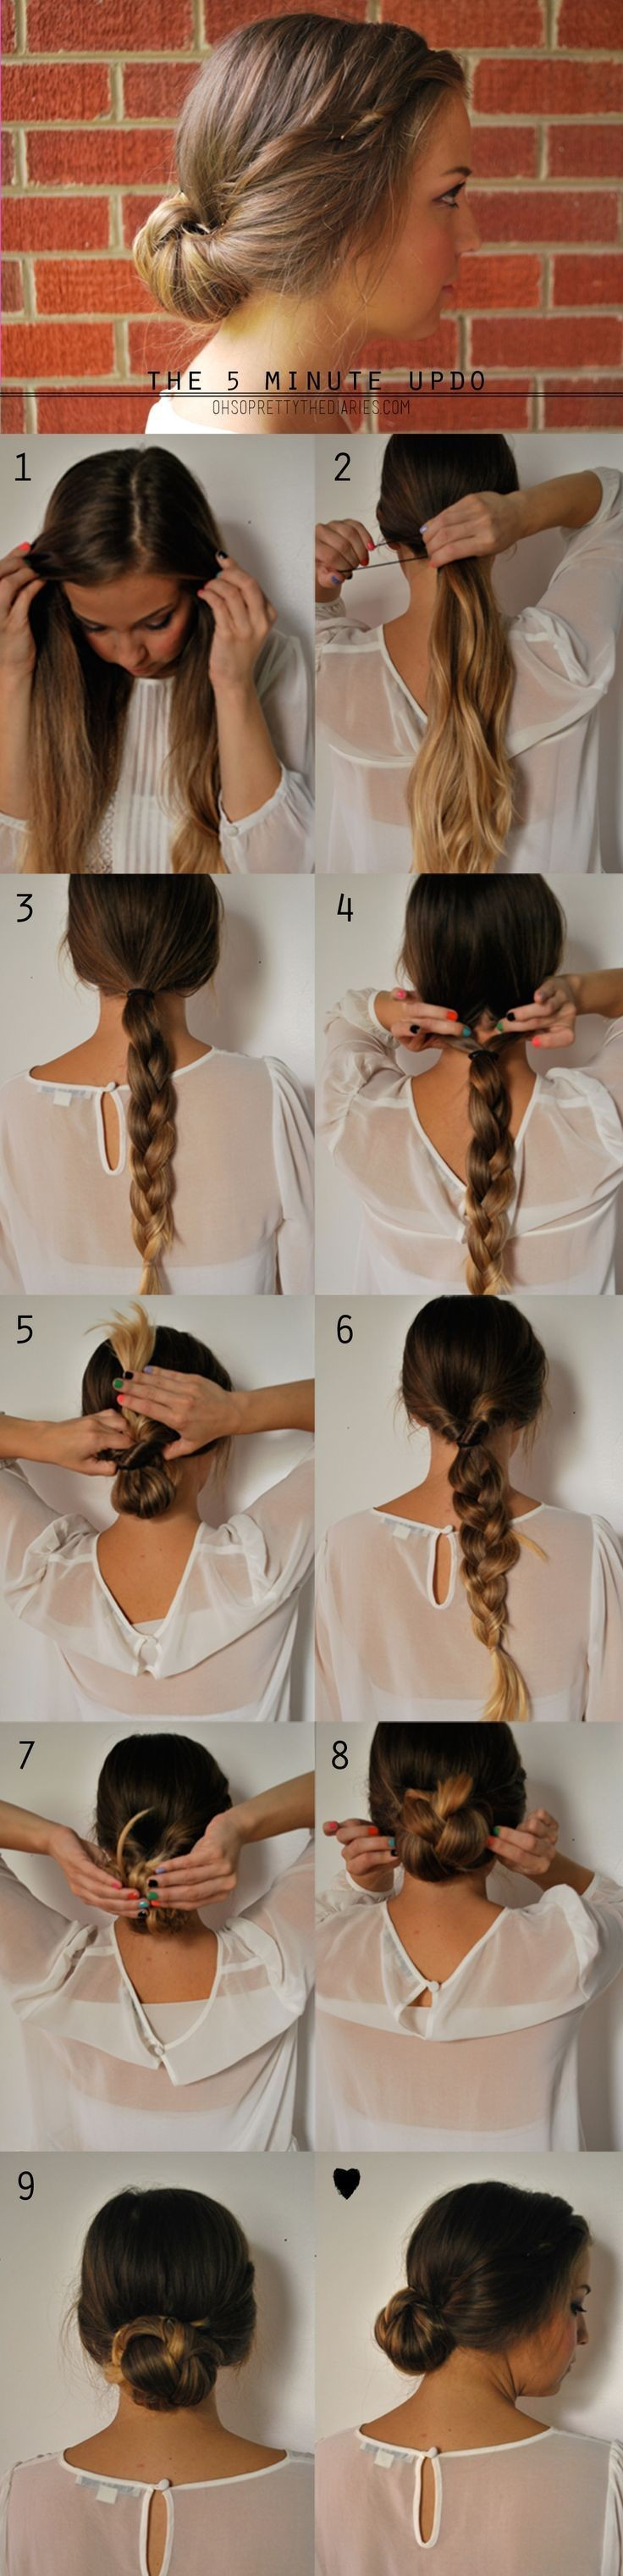 12 Cute hairstyles: Step-by-Step Hairstyles for Long Hair